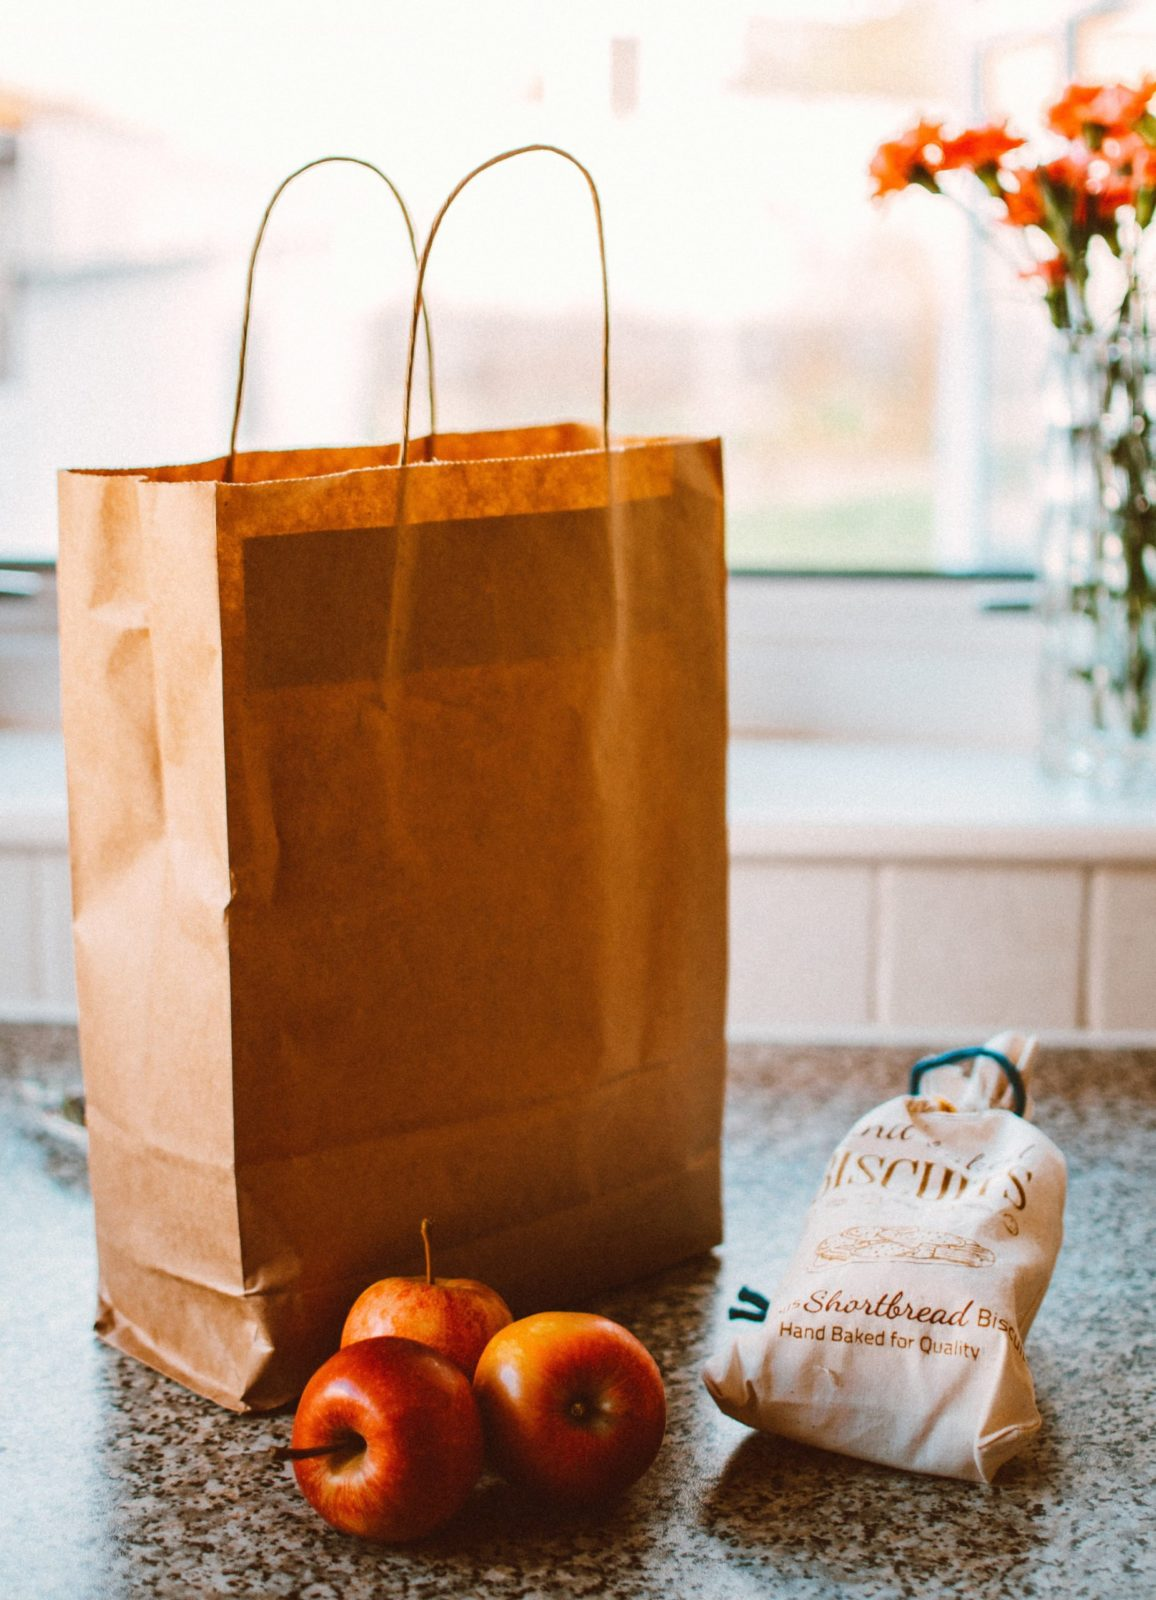 Fresh fruits delivered right to your home courtesy of a grocery delivery app